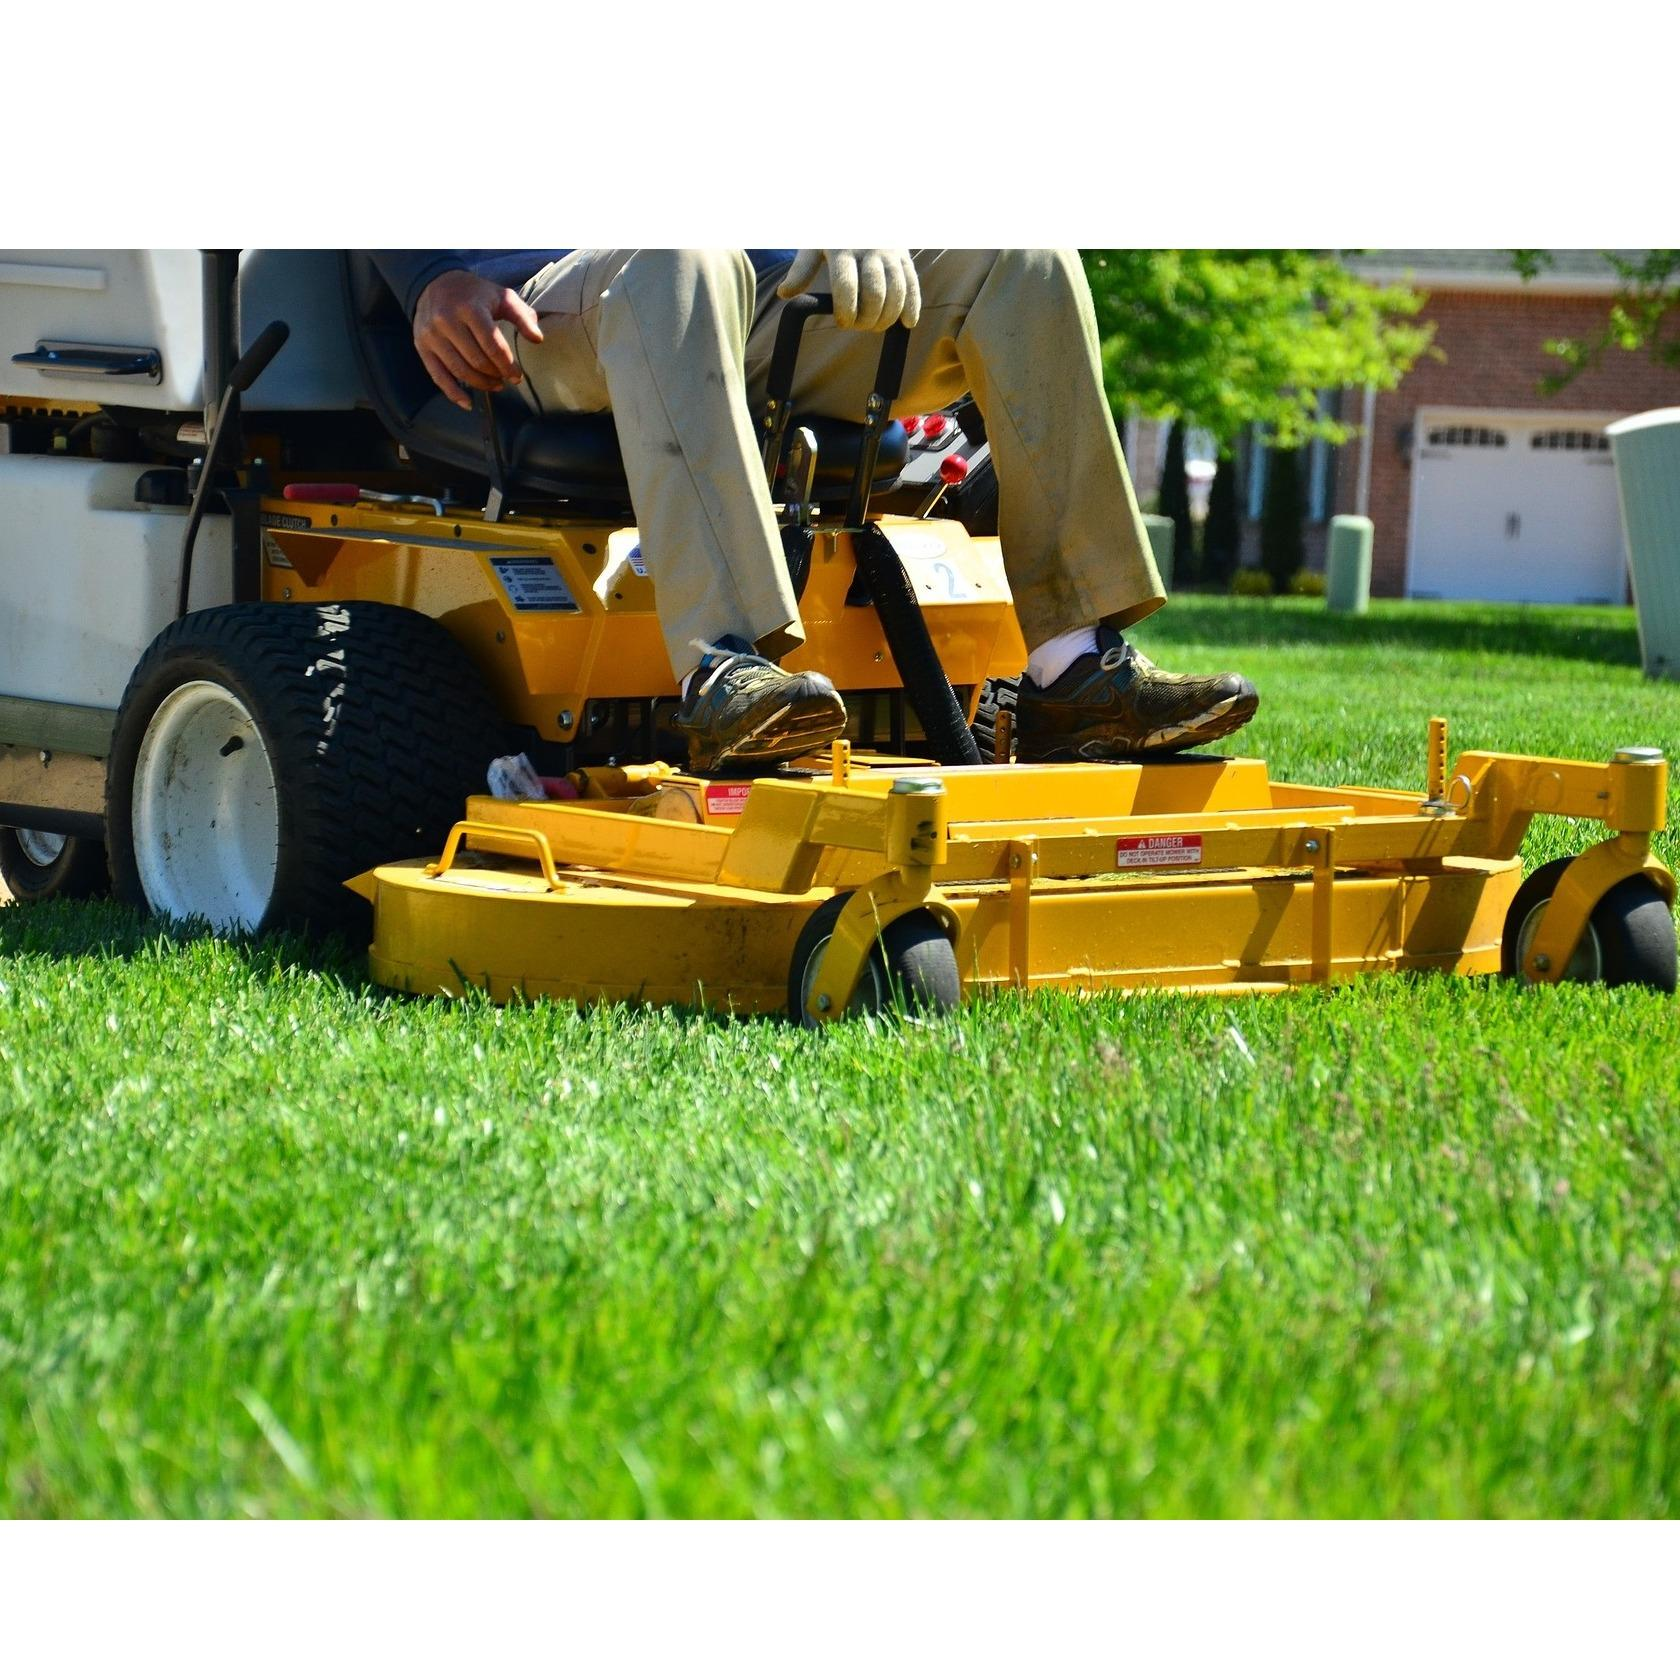 Spic N Span Pressure Washing Lawn Care Landscaping In Anderson Sc 29625 864 973 1718 Chamberofcommerce Com